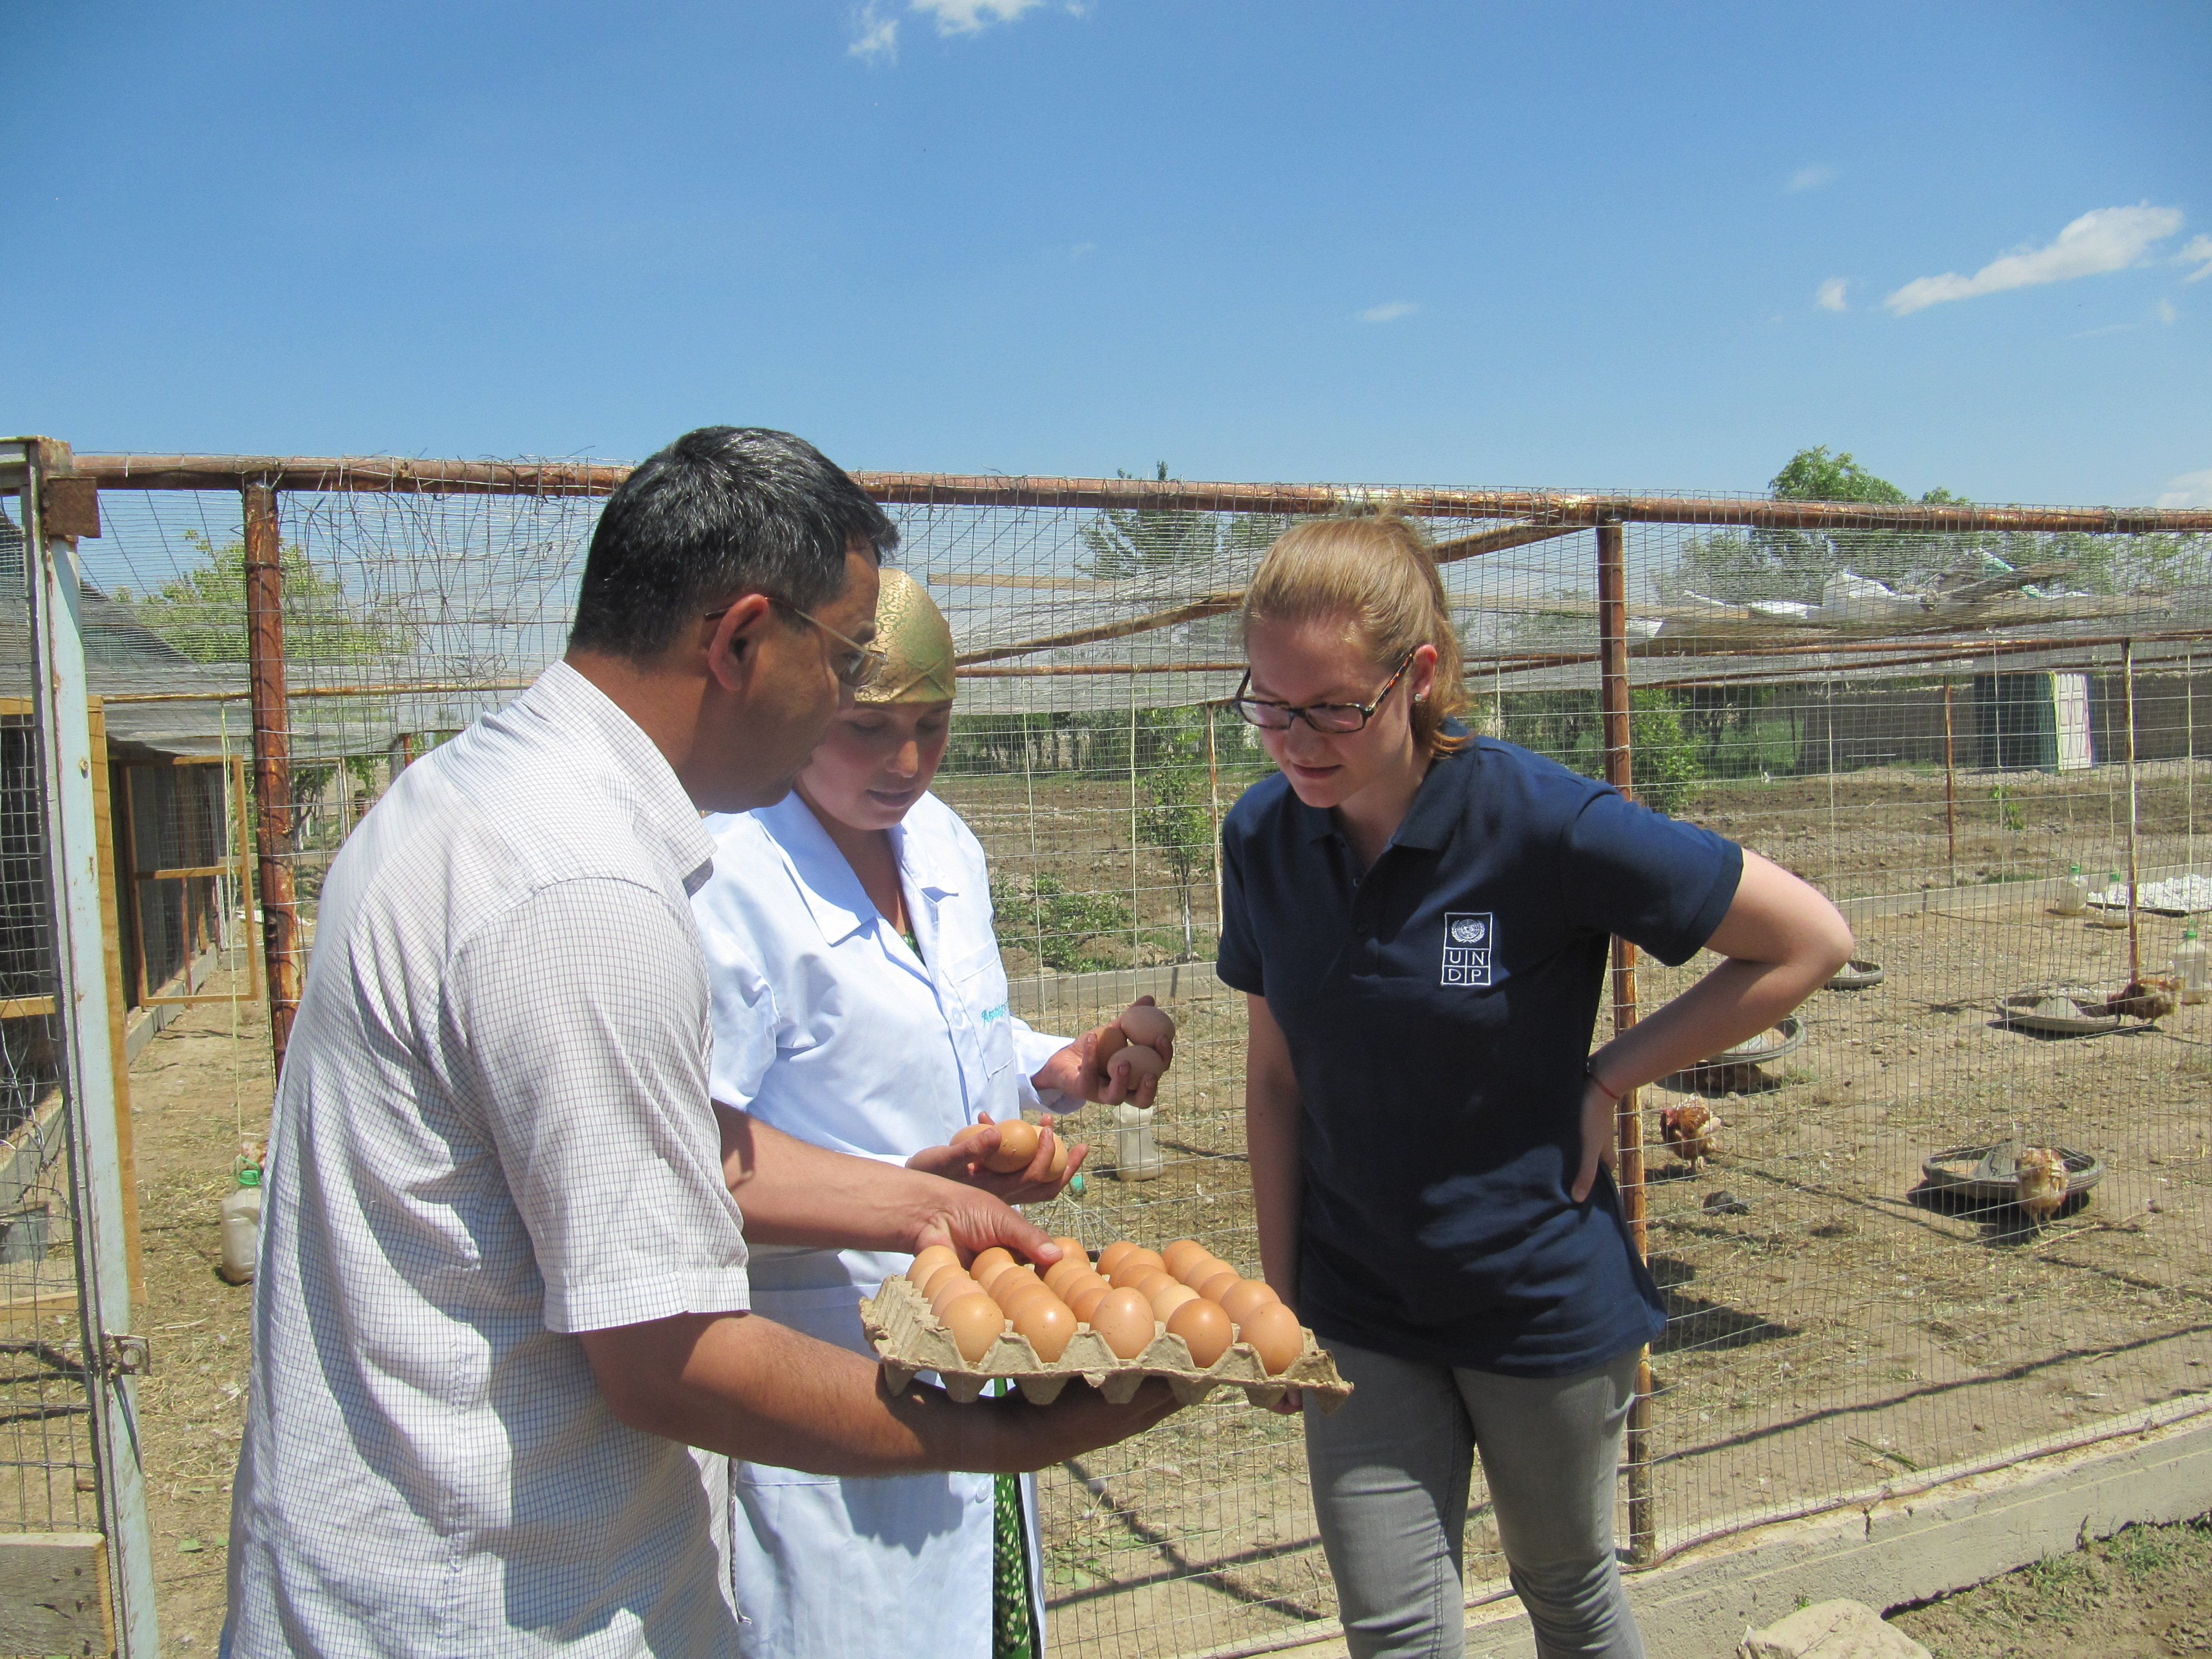 International UN Volunteer Ilona Vilhelmiina Vekkeli (right) meets one of the clients supported by UNDP's Aid for Trade project.